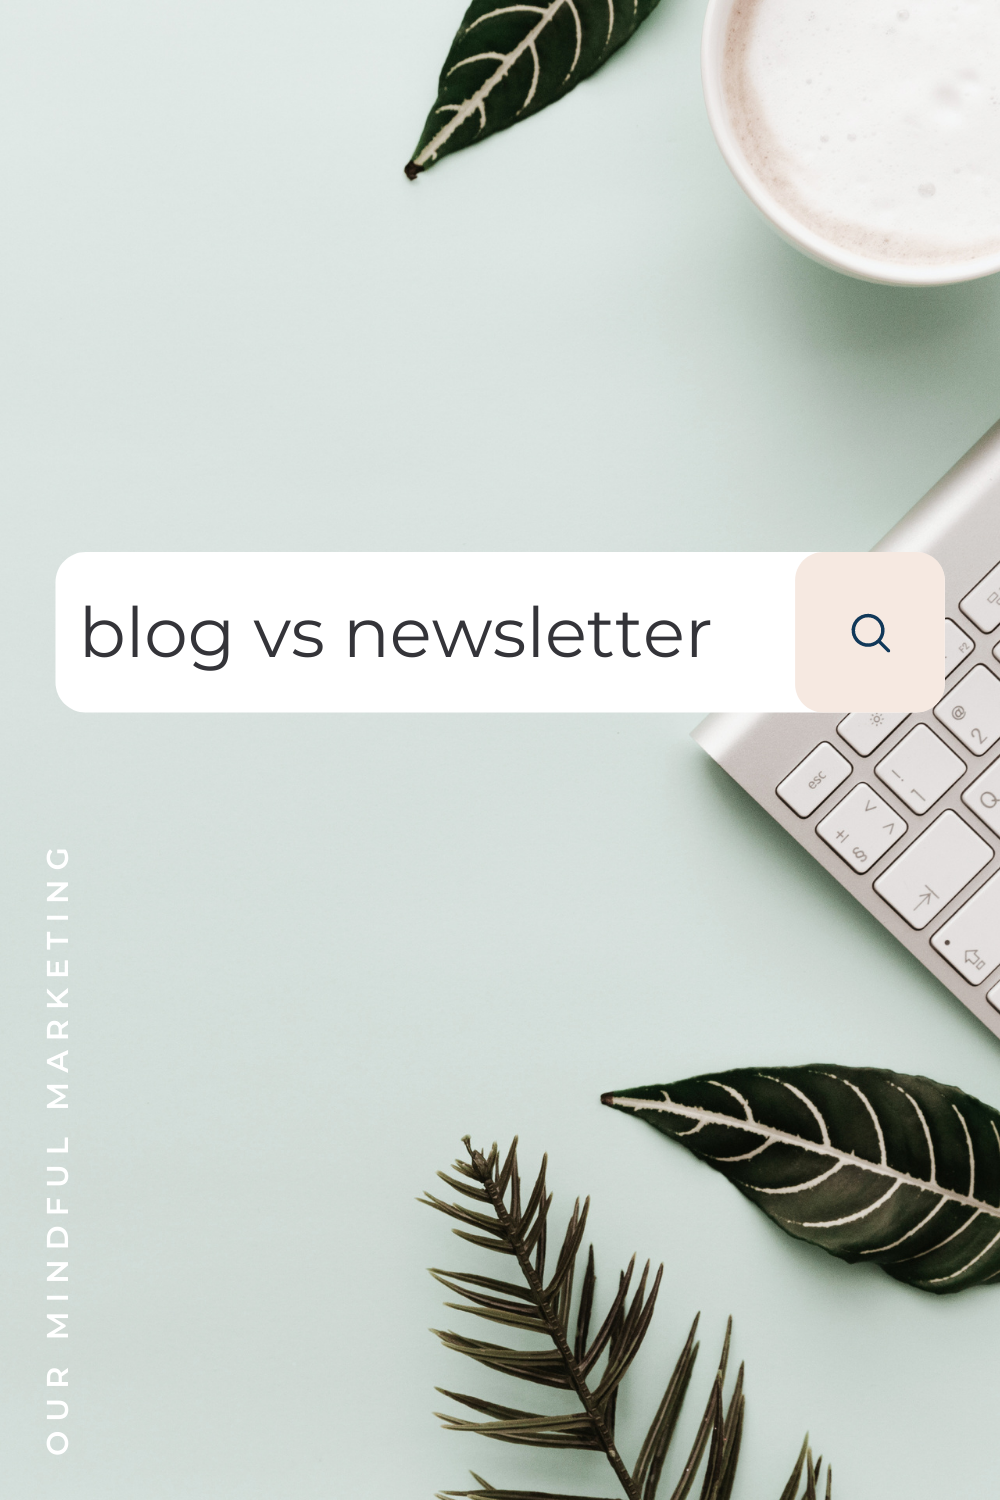 """A template of an image with a cappuccino, the edge of a keyboard and green leaves in the background. In the foreground of the image is a search bar from a search engine with text in the search bar that states, """"blog vs newsletter."""""""